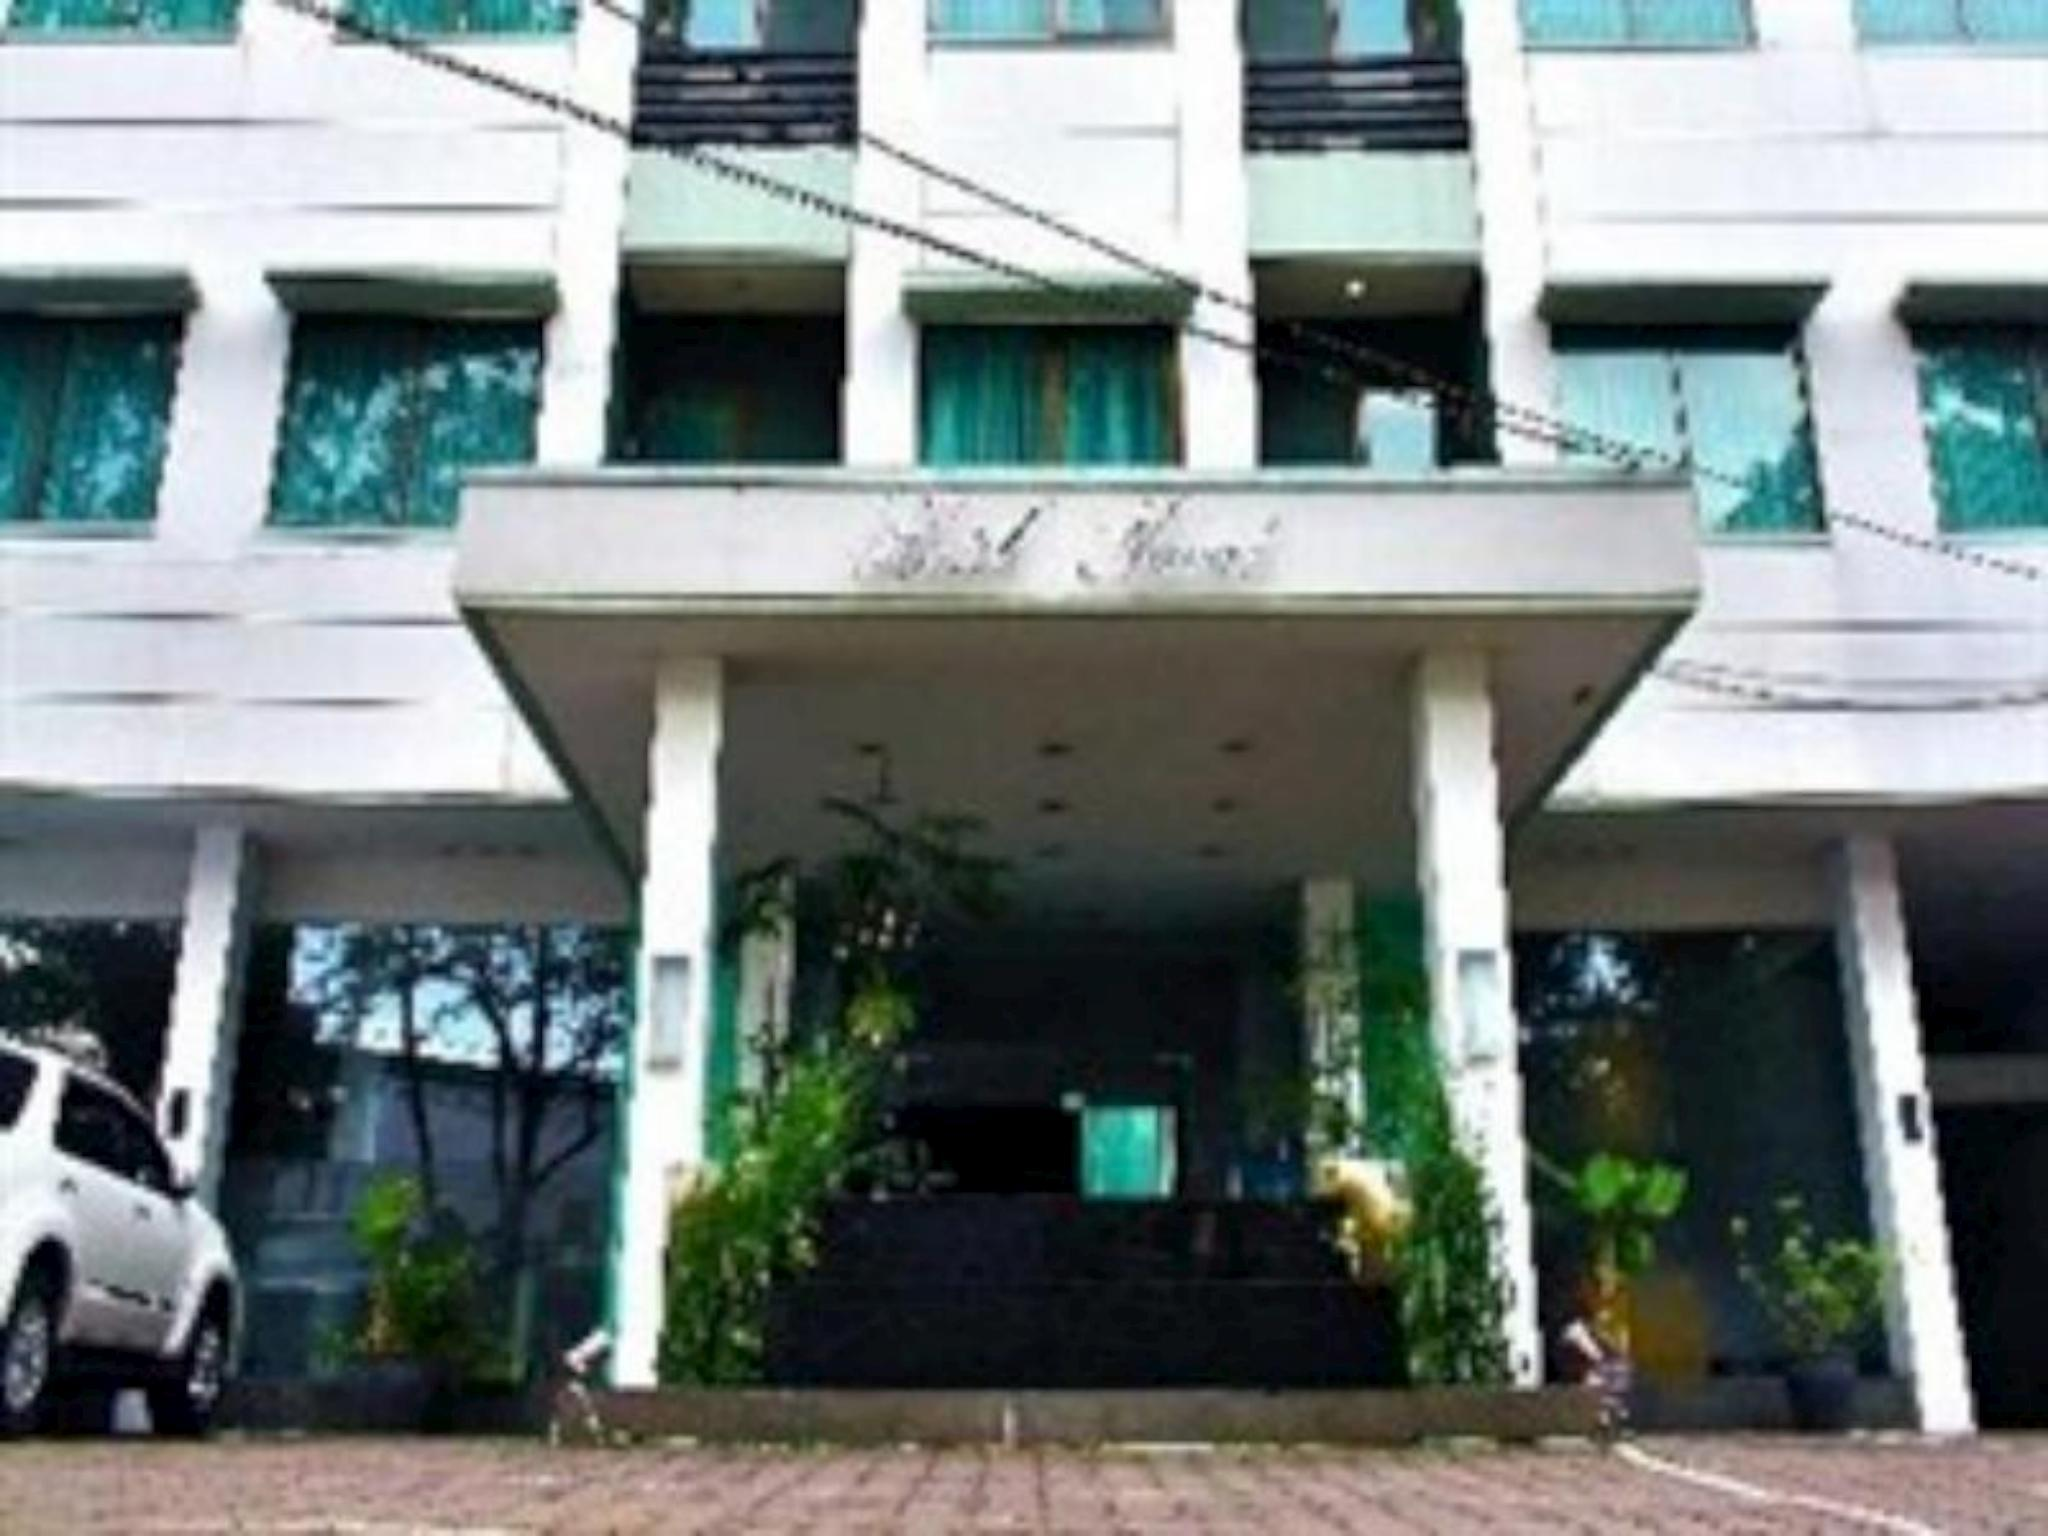 OYO 340 Cleo Residence Book / Directions - NAVITIME Transit